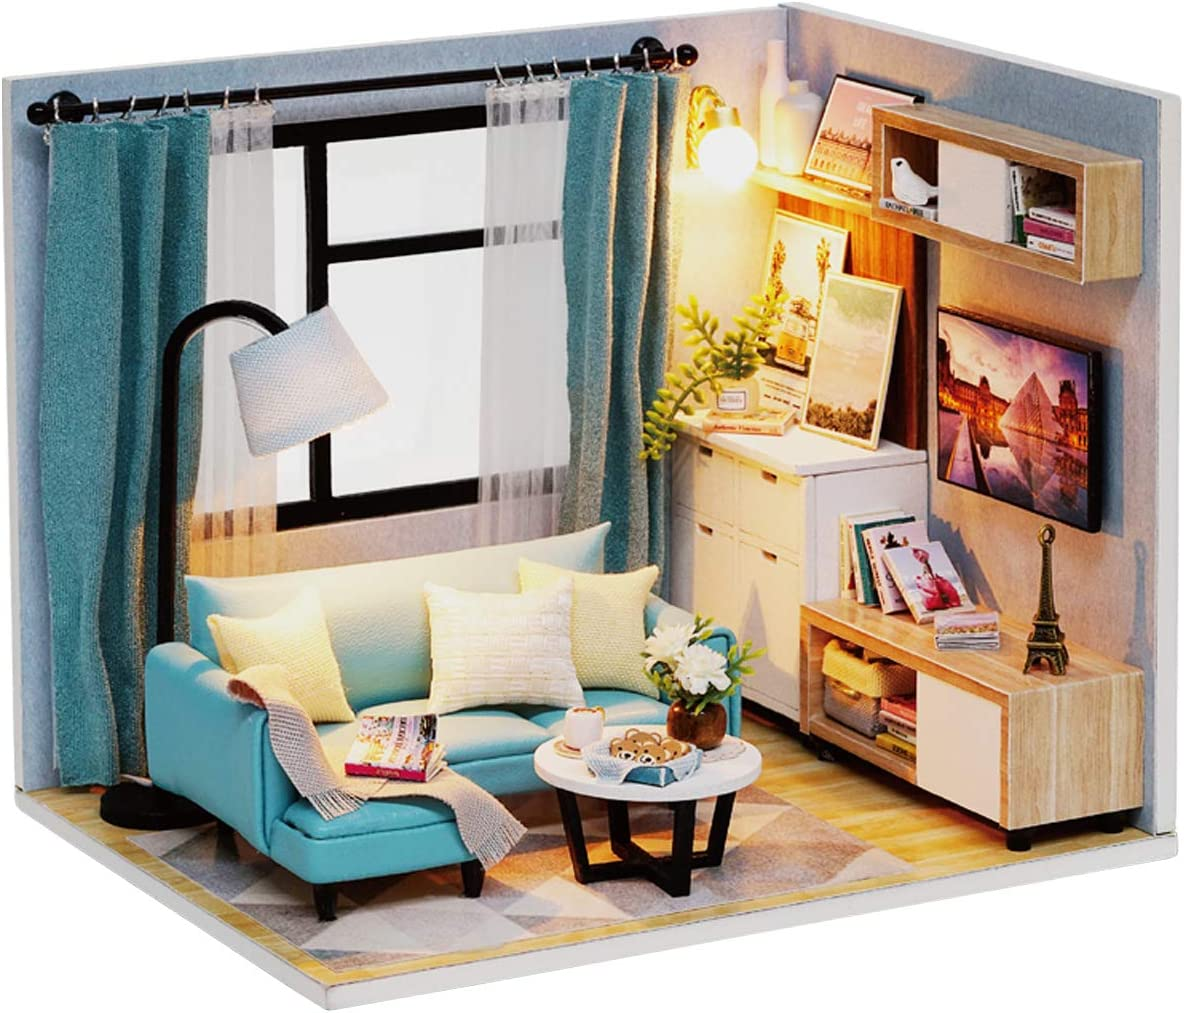 Ogrmar 1:24 Scale Dollhouse Miniature with Furniture, DIY Dollhouse Kit Plus Dust Proof & LED Light, Creative Room Toys for Children Gift (Corner of Living Room)